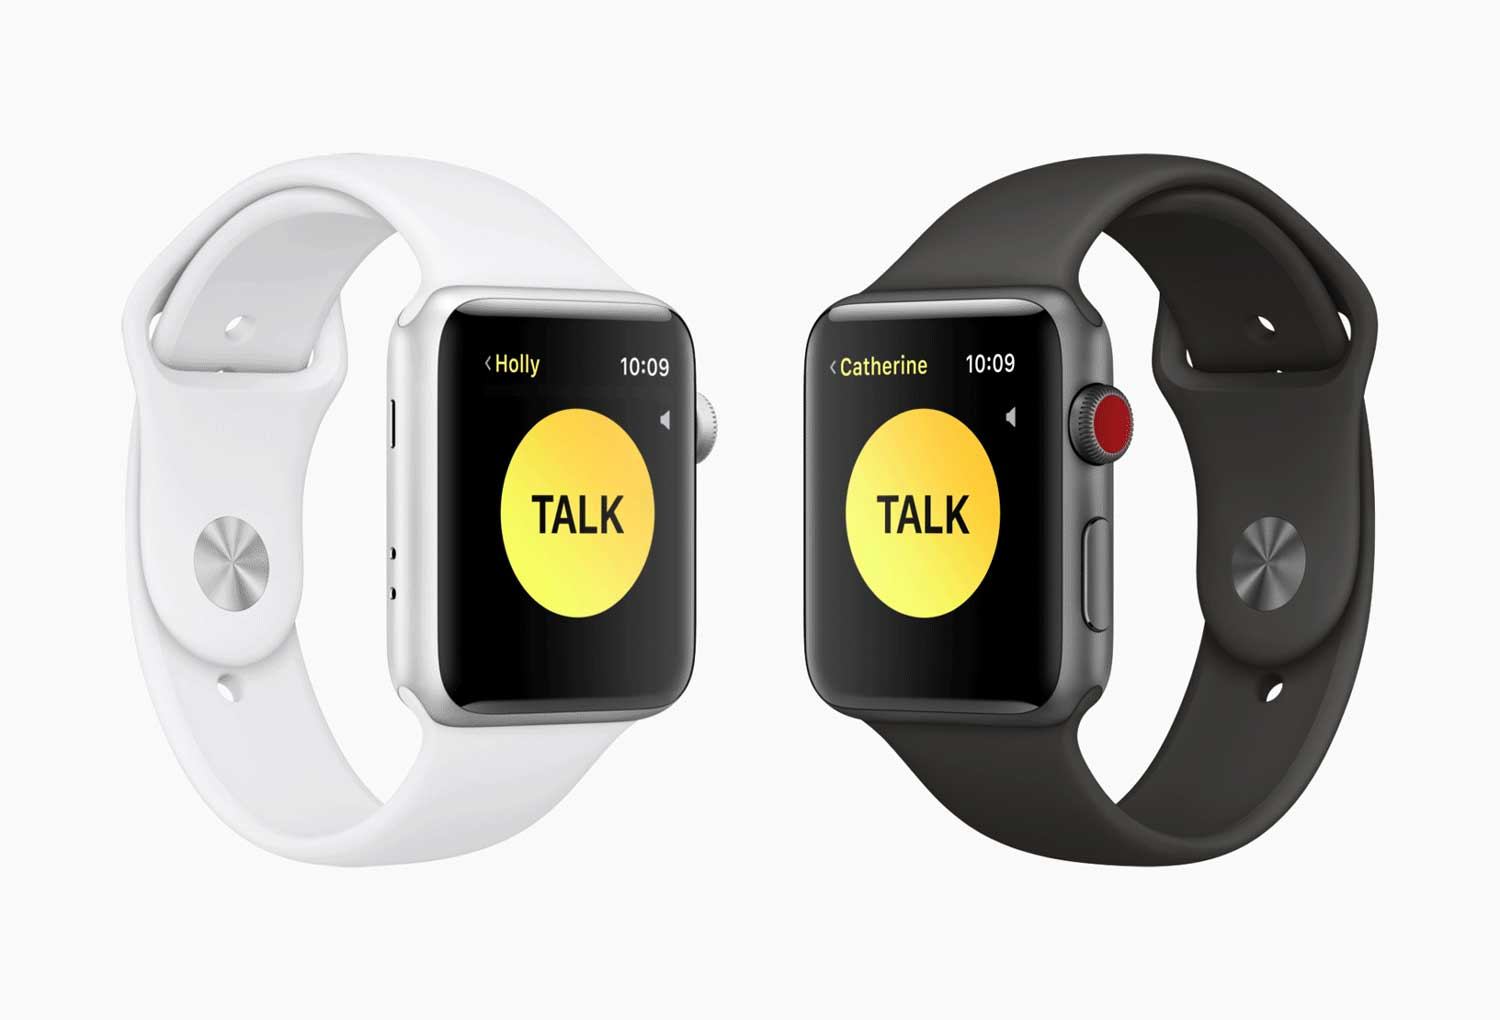 Apple watchOS 5 walkie talkie feature